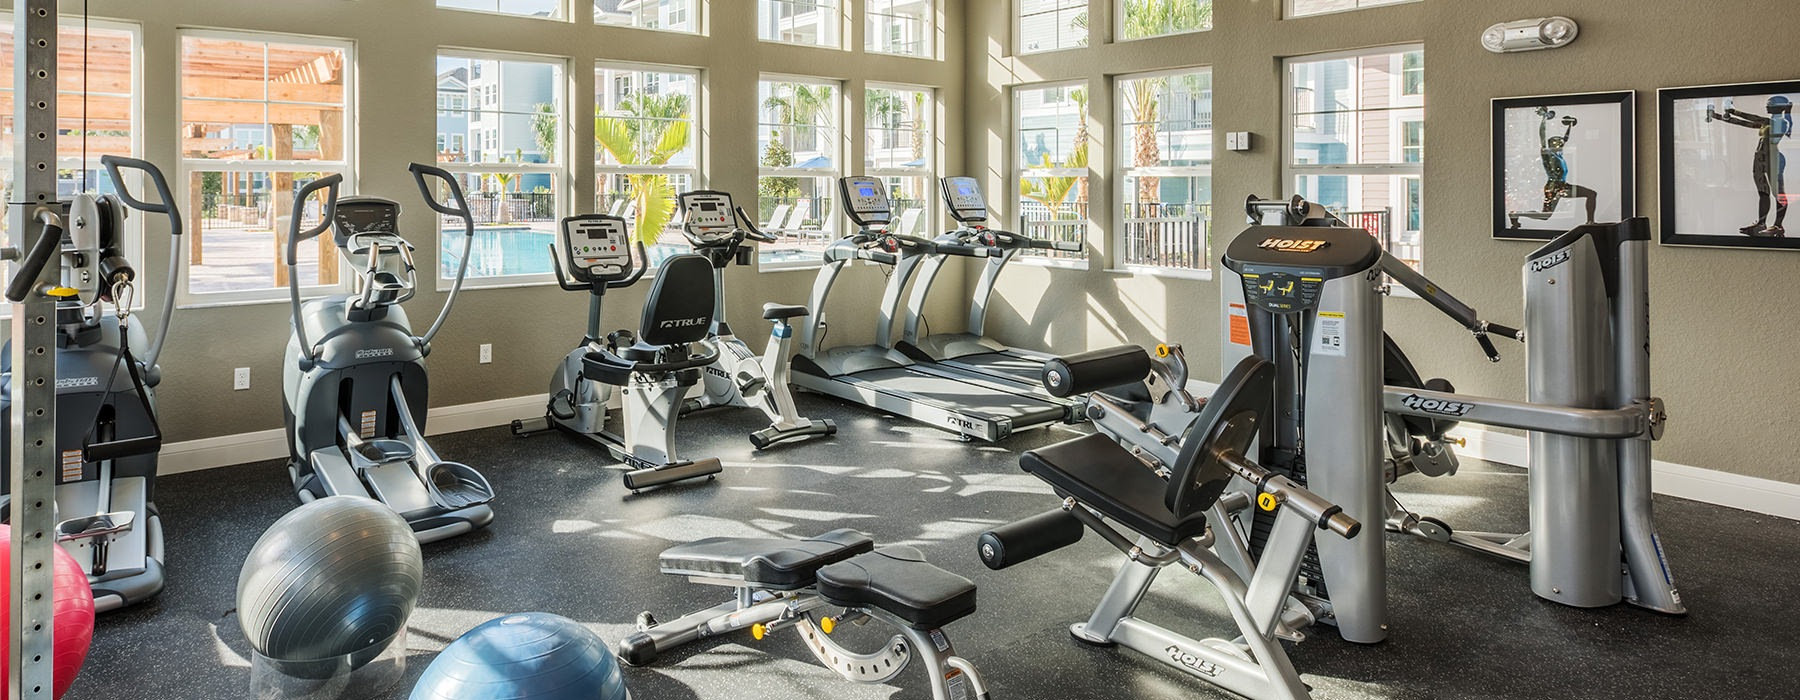 fitness center with large open spaces allowing room for workouts and for using equipment